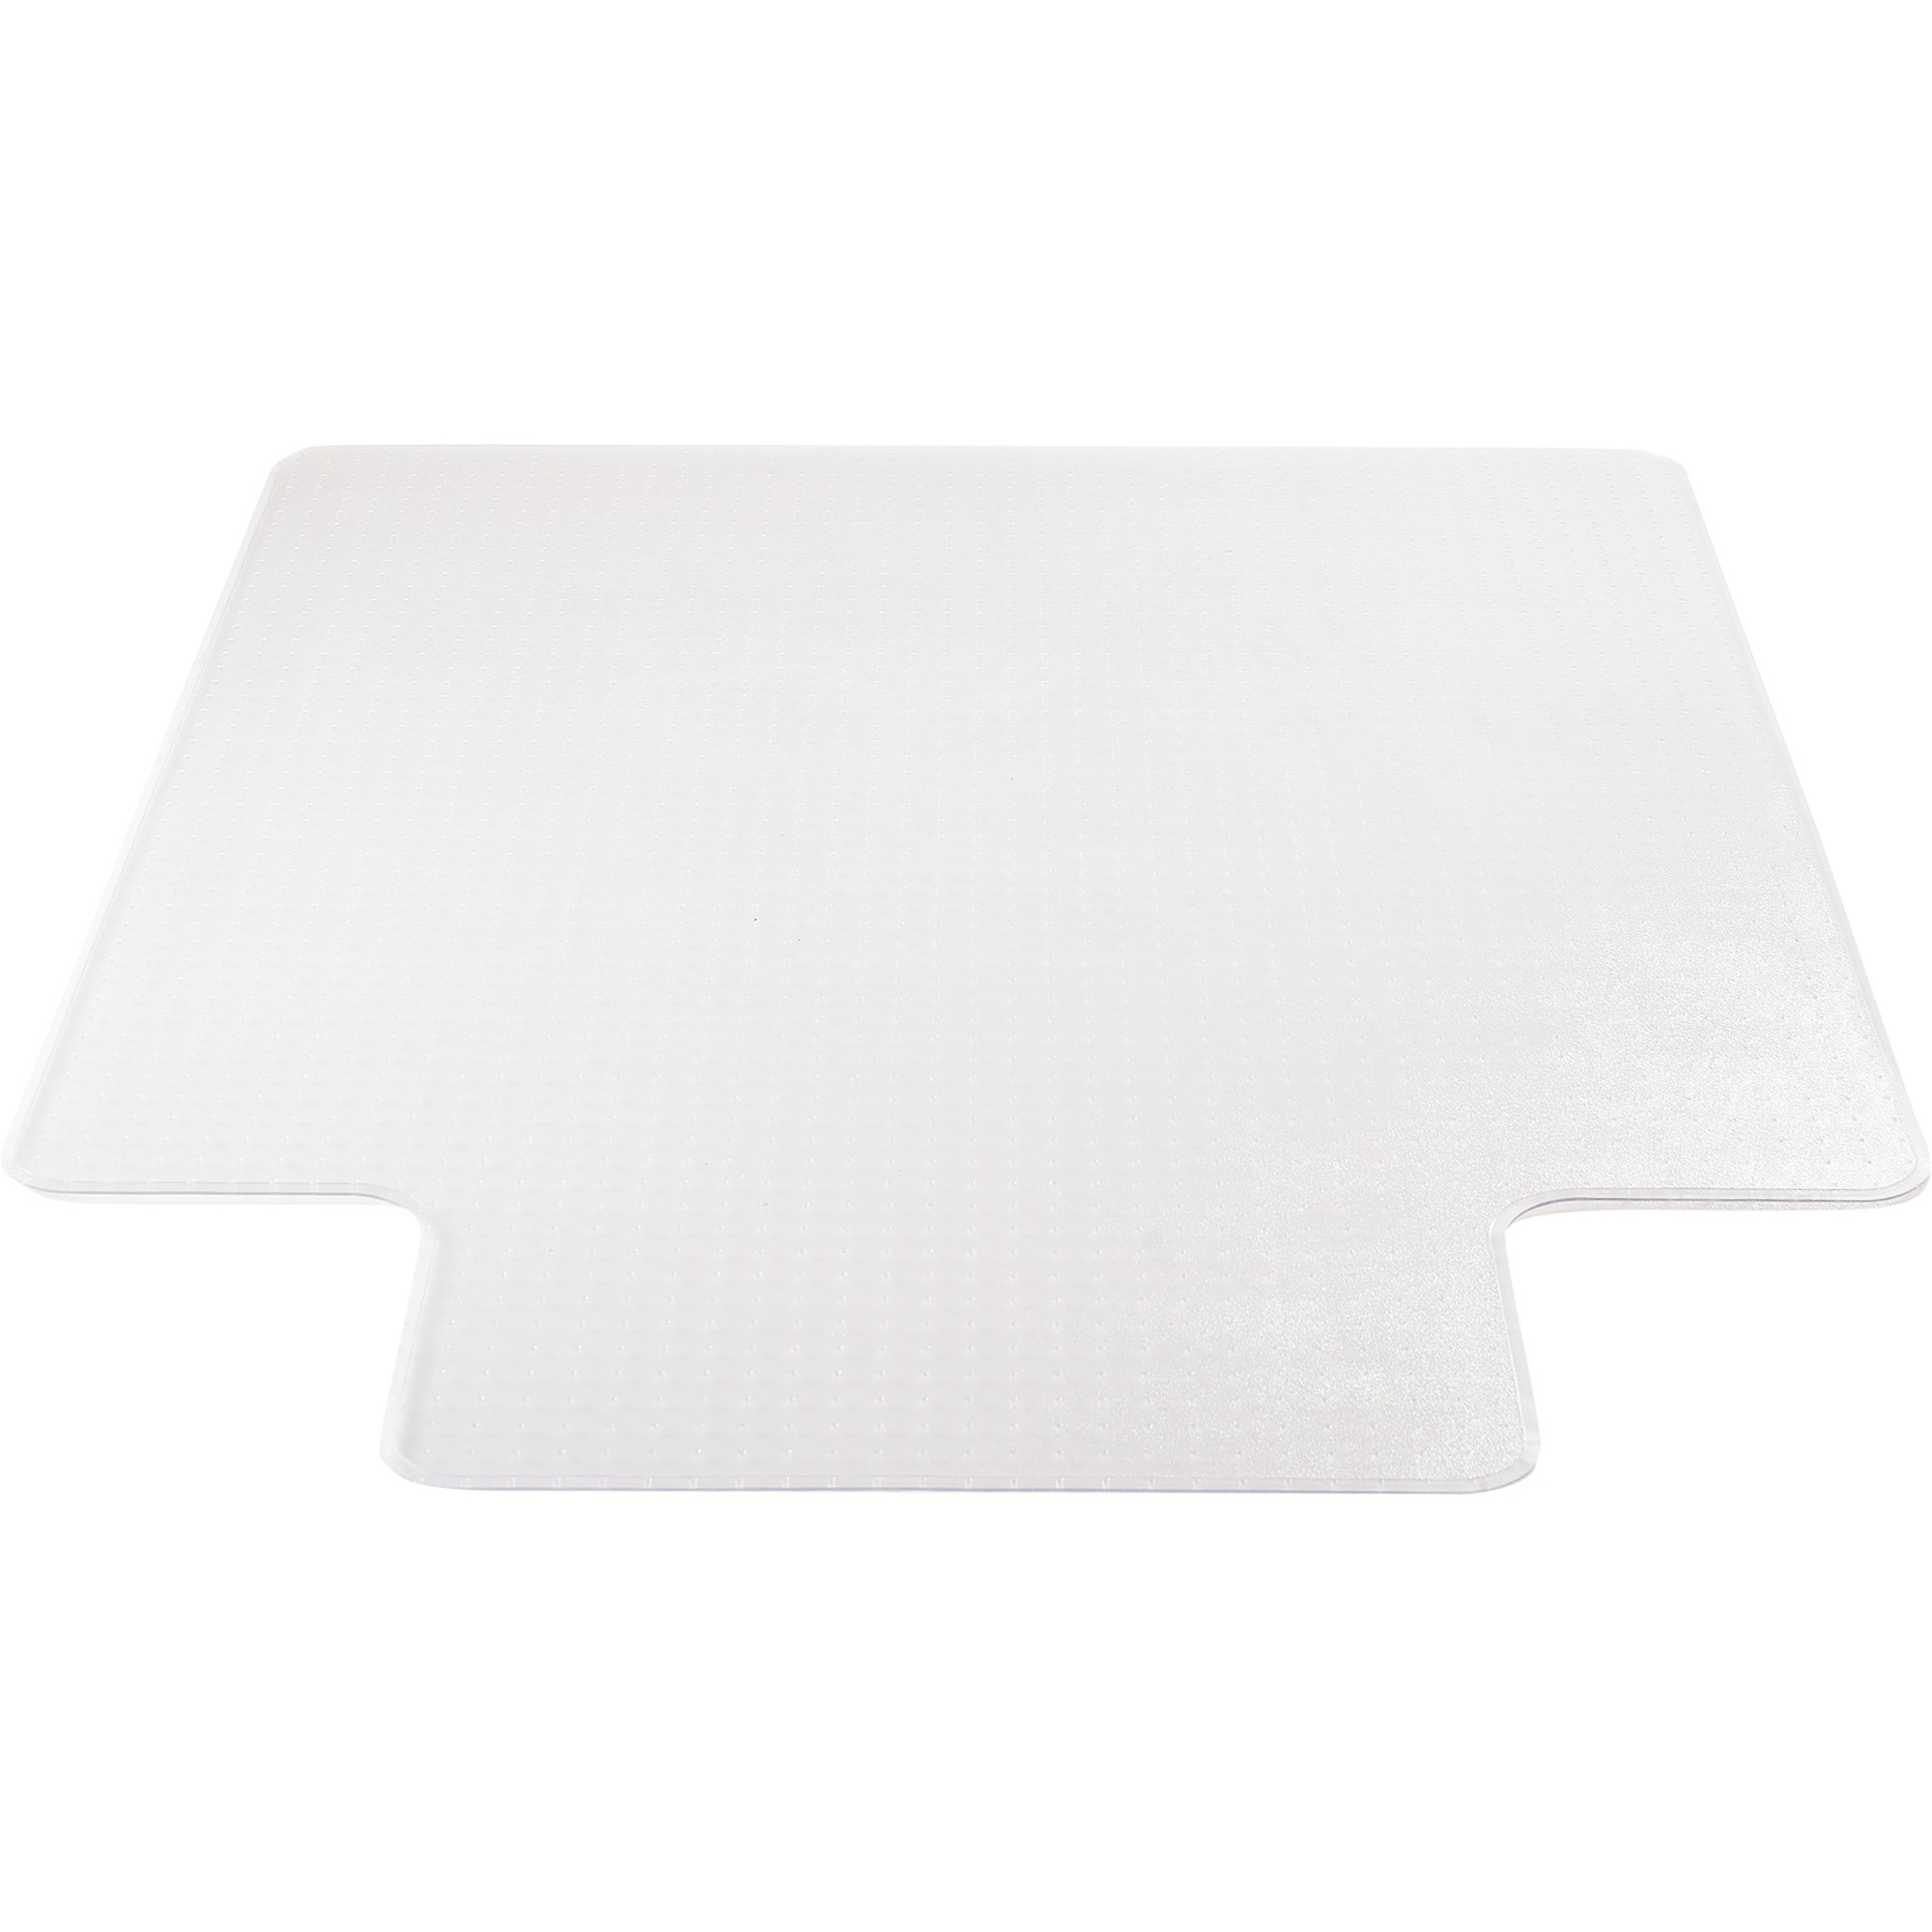 Triplenet Pricing Lorell Plushmat Wide Lip Chairmat 25756